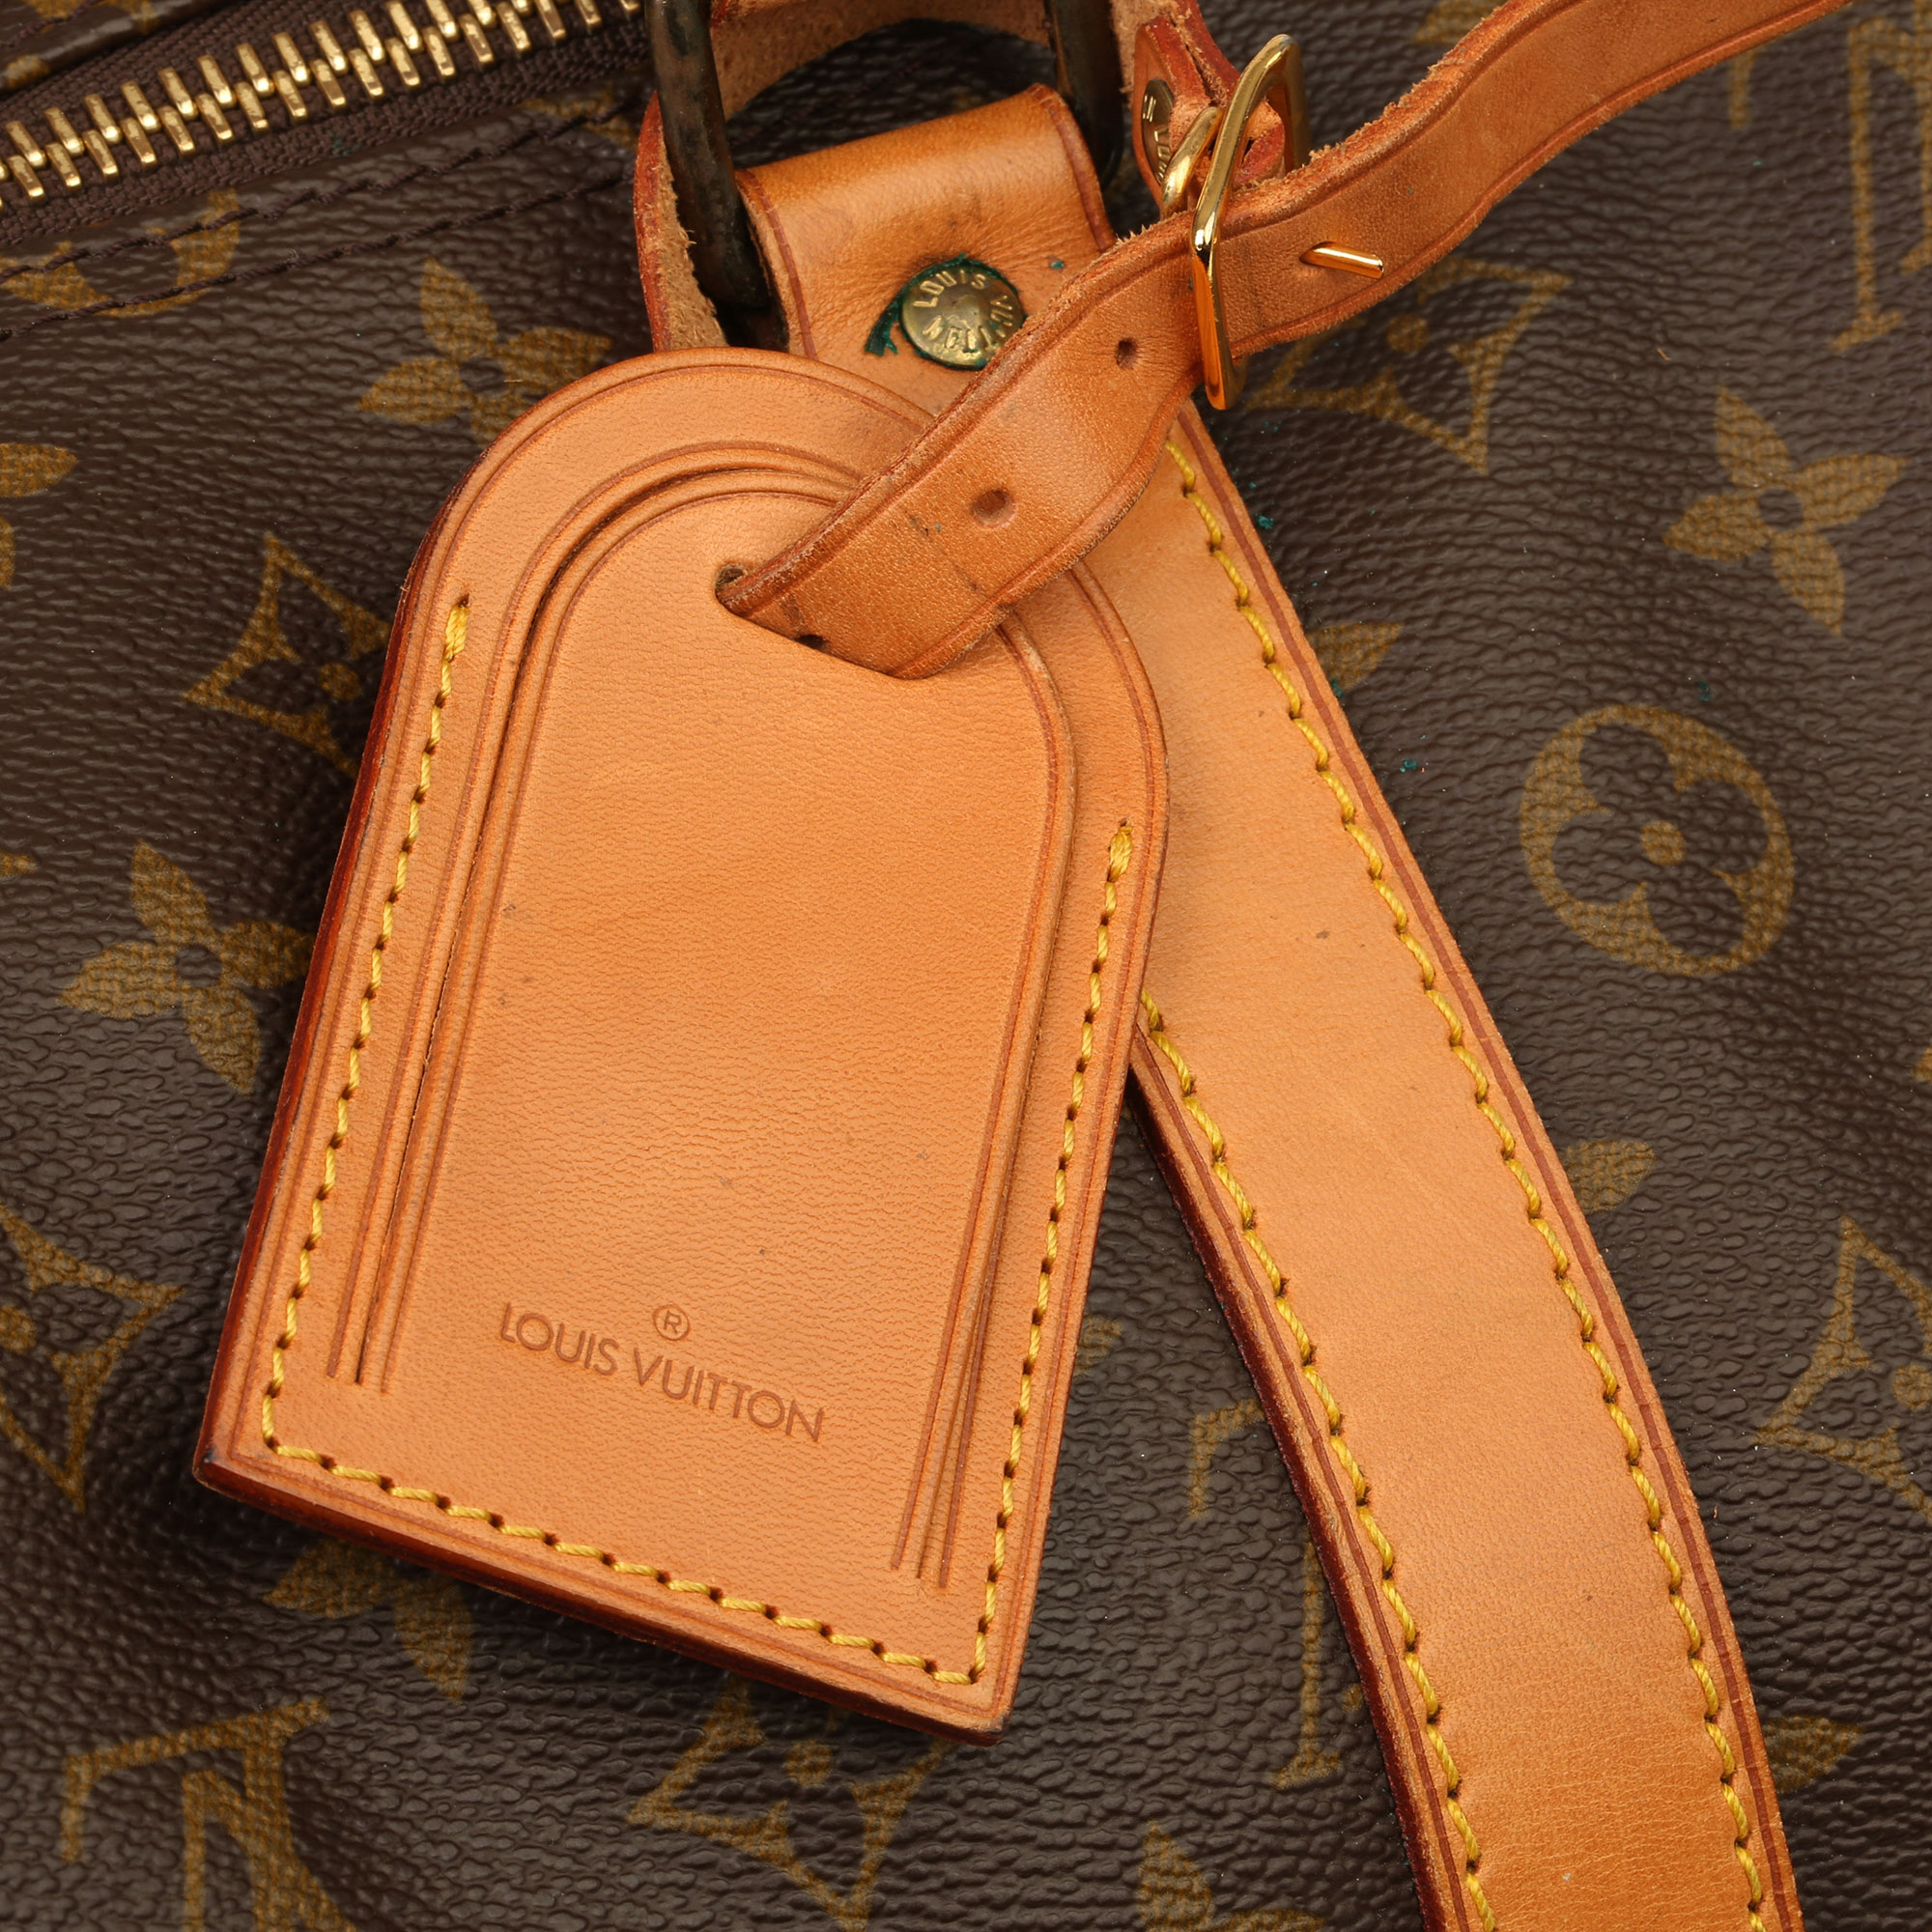 Louis Vuitton Brown Monogram Coated Canvas & Vachetta Leather Vintage Keepall 55 - Image 10 of 14